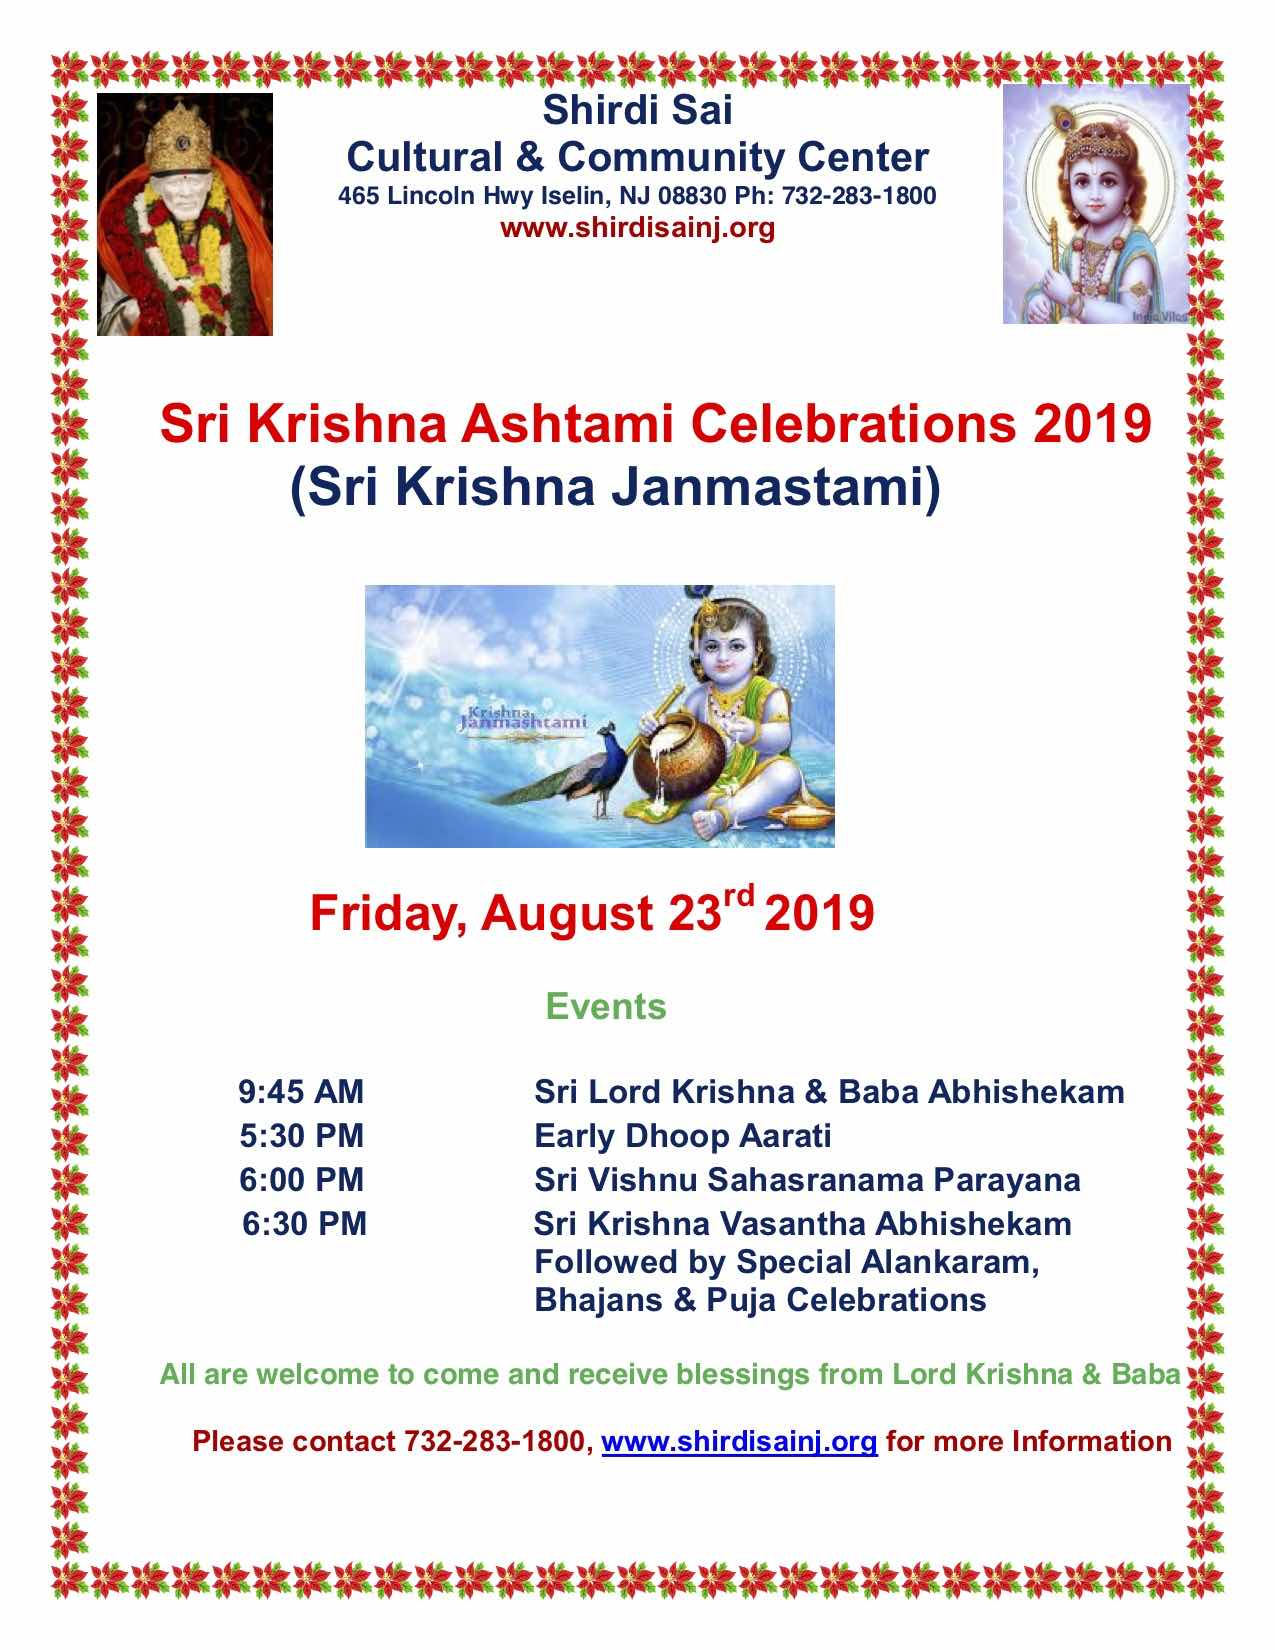 Home | Welcome to Shirdi Sai Cultural & Community Center - New Jersey